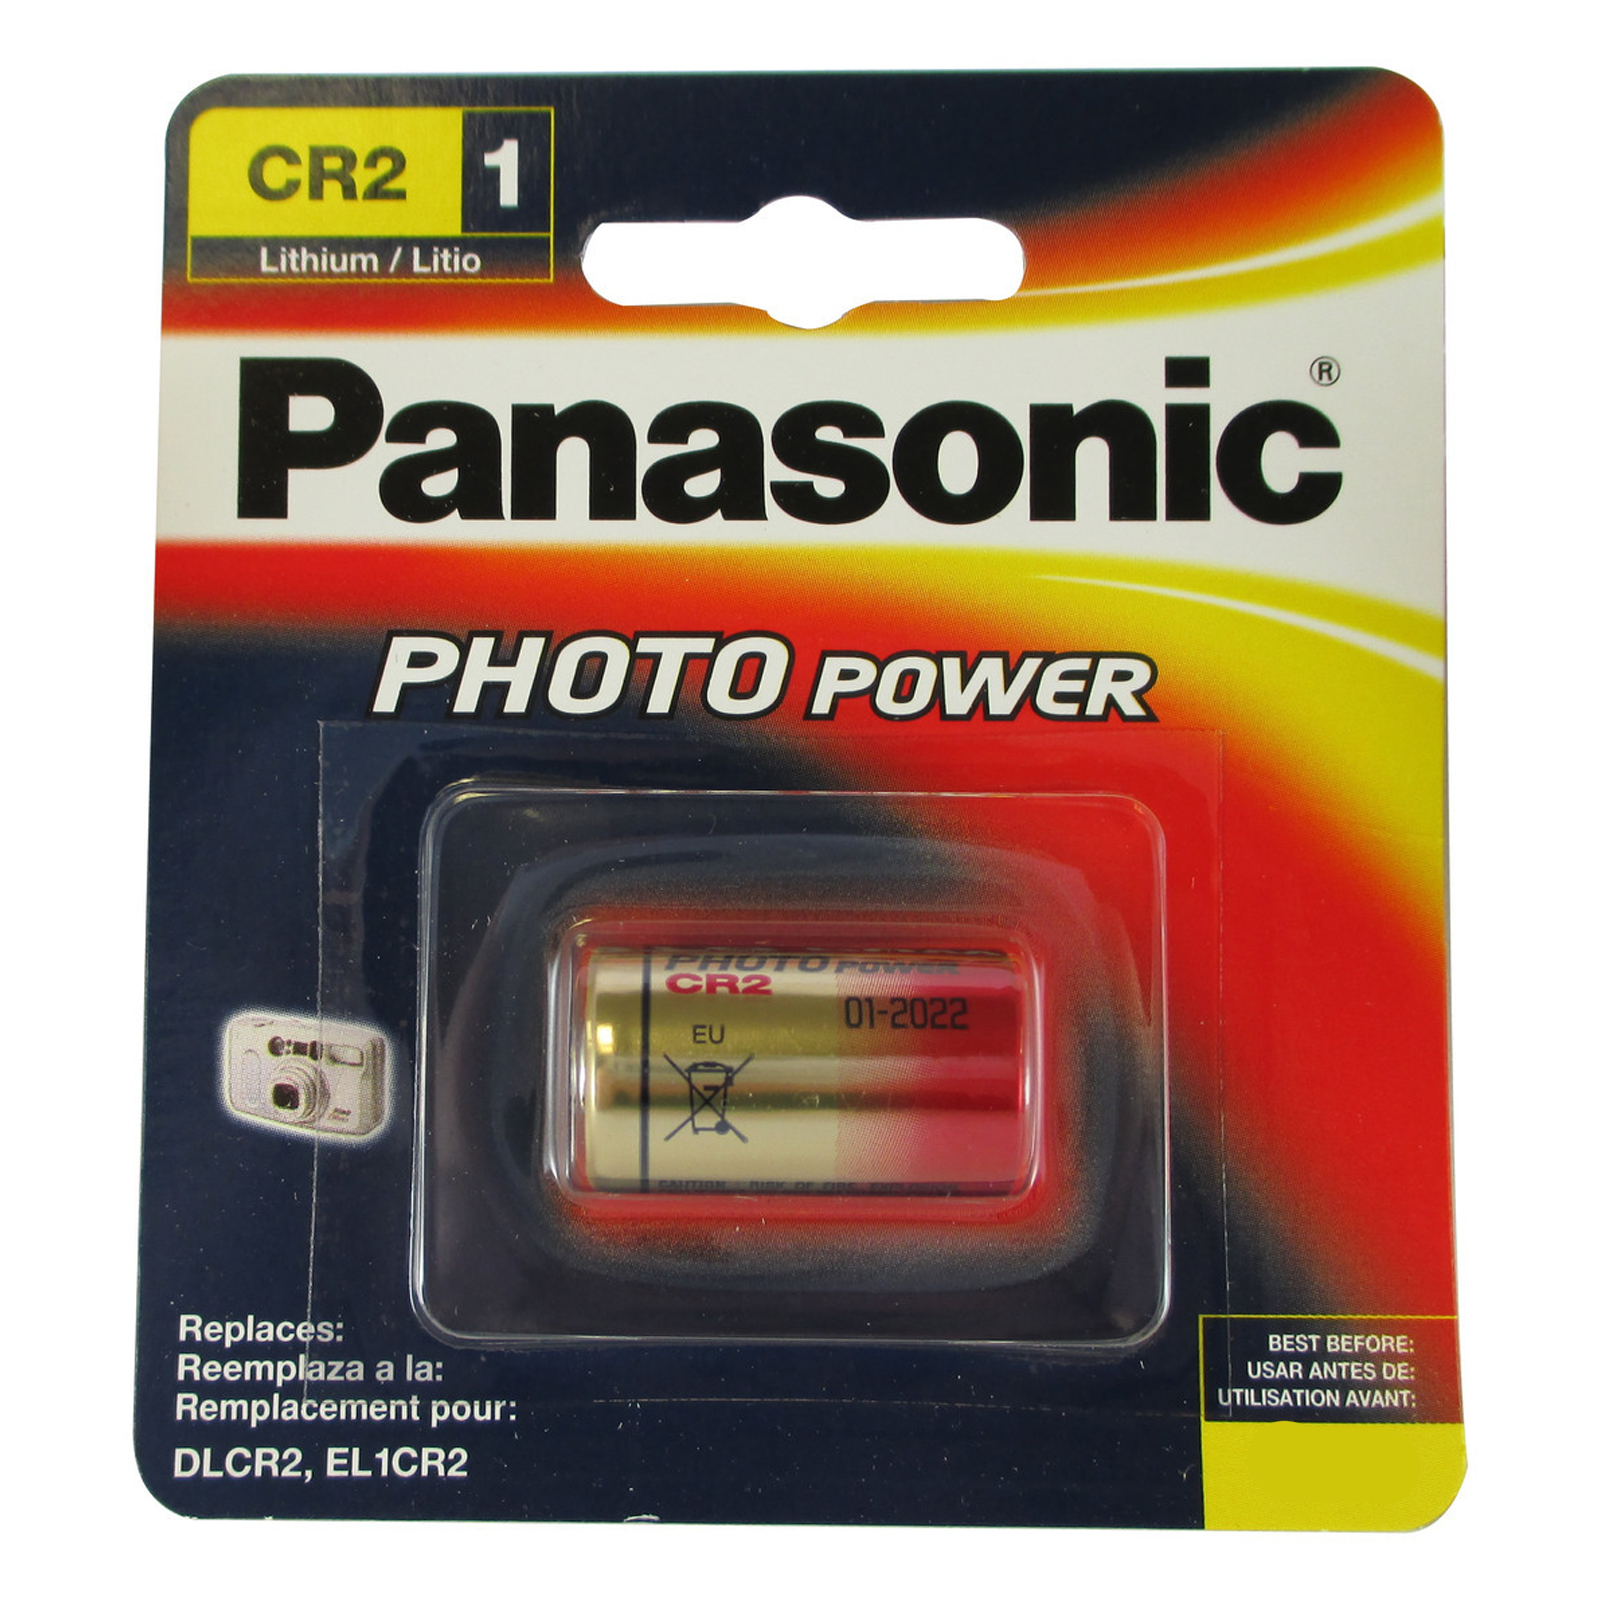 panasonic 3v cr 2 photo lithium battery replaces el cr2 gpcr rlcr2 fast usa ship ebay. Black Bedroom Furniture Sets. Home Design Ideas